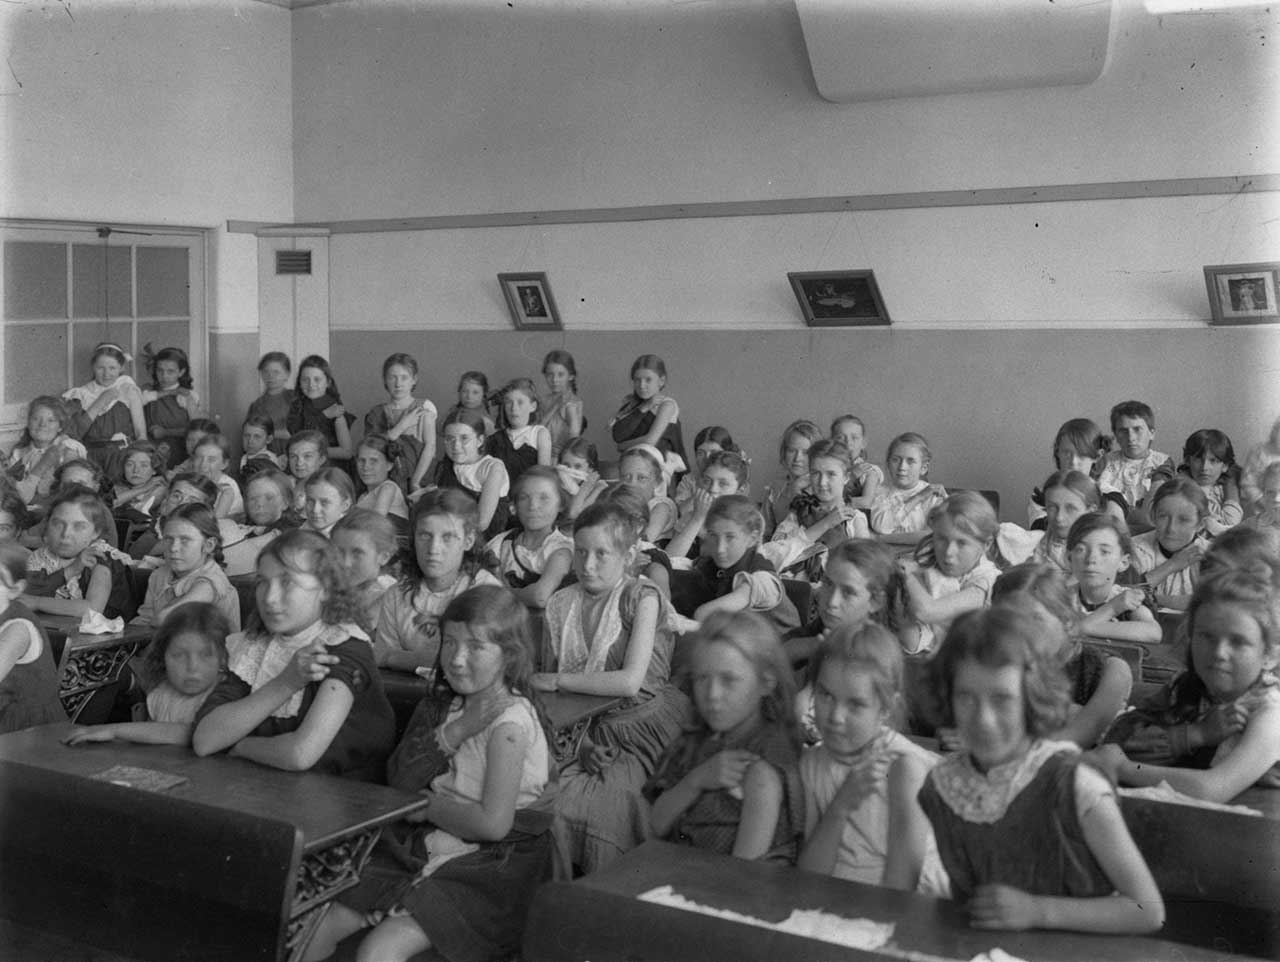 Black and white photograph showing a classroom of young girls, seated at desks. Many are lifting their left sleeve so show their upper arm.